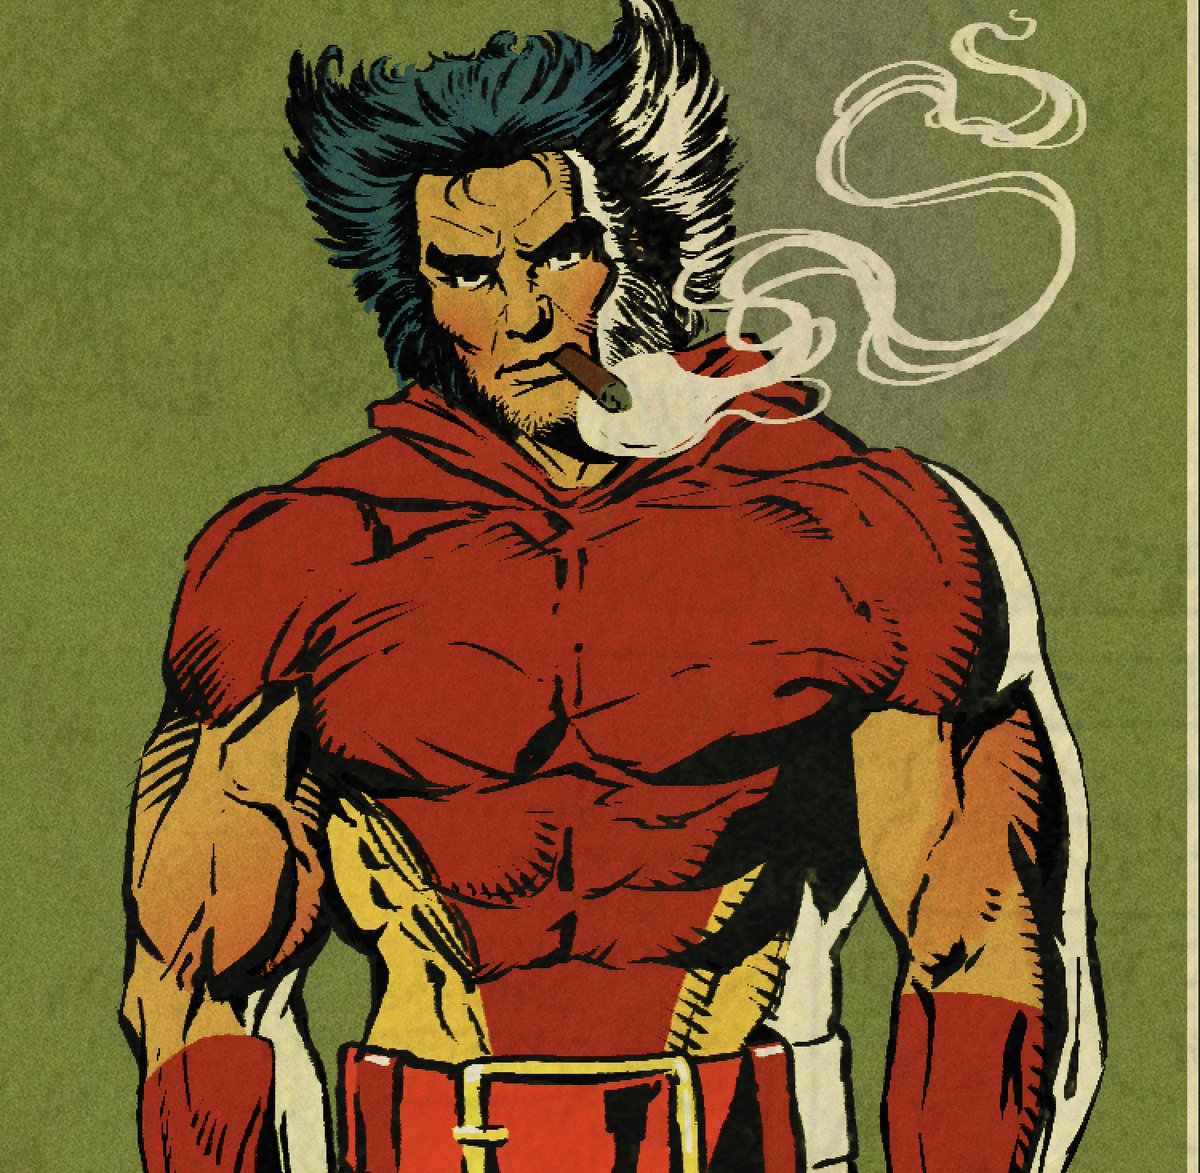 Tried out some new digital pens. Remember when Wolverine could smoke in the comics? #wolverine #Logan #marvel #Xmen #mutant #weaponx #comics #illustration #cigar #smoke #sketch